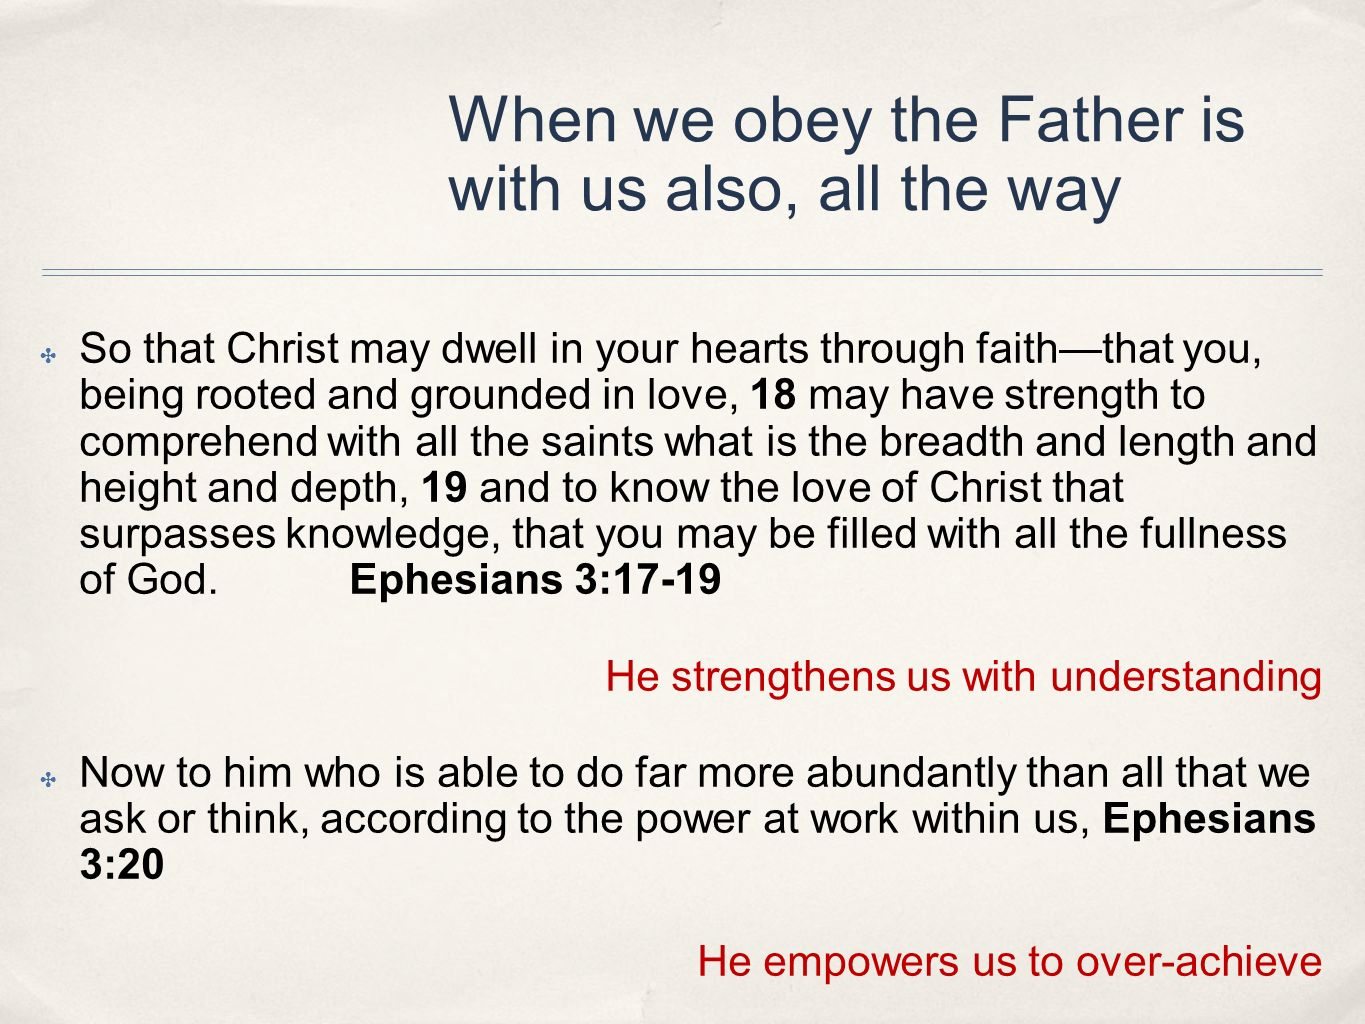 When we obey the Father is with us also, all the way